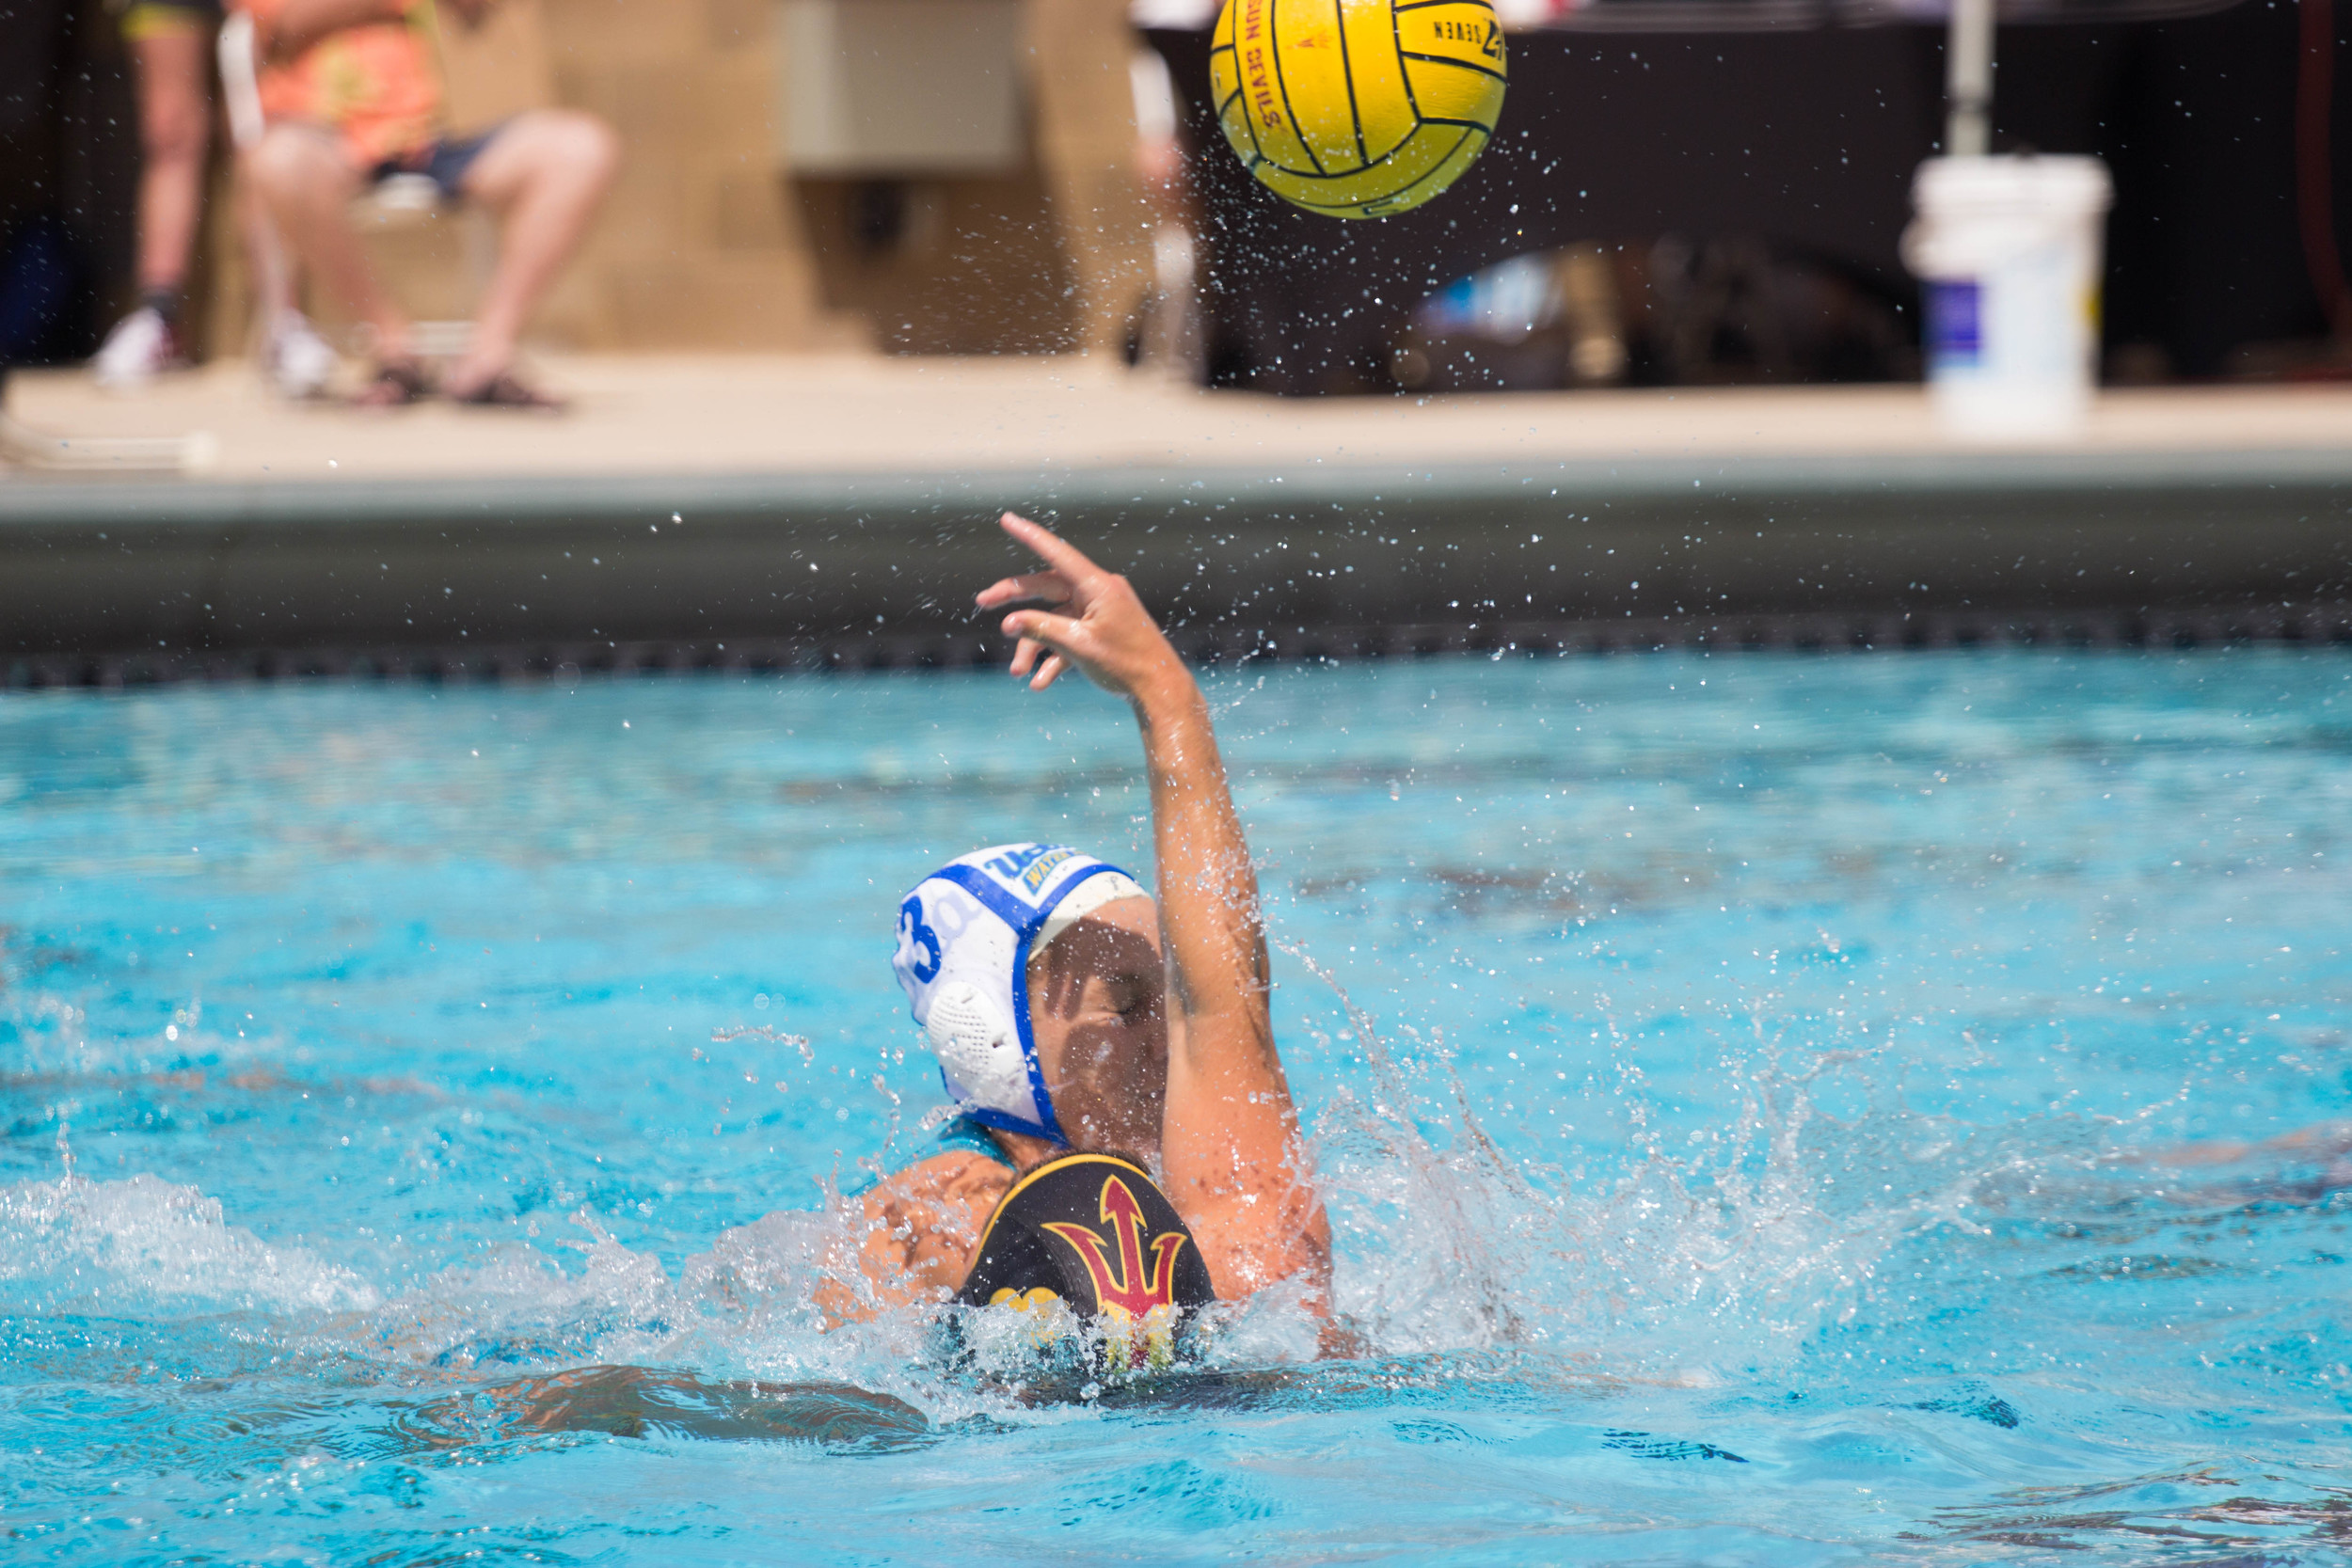 ASU sophomore Alkistis Benekou attempts to keep the ball away from UCLA junior Kodi Hill. The game ended in a score of 11-5, UCLA at the Mona Plummer Aquatic Complex in Tempe, Ariz on Saturday.(Photo by Gretchen Burnton)